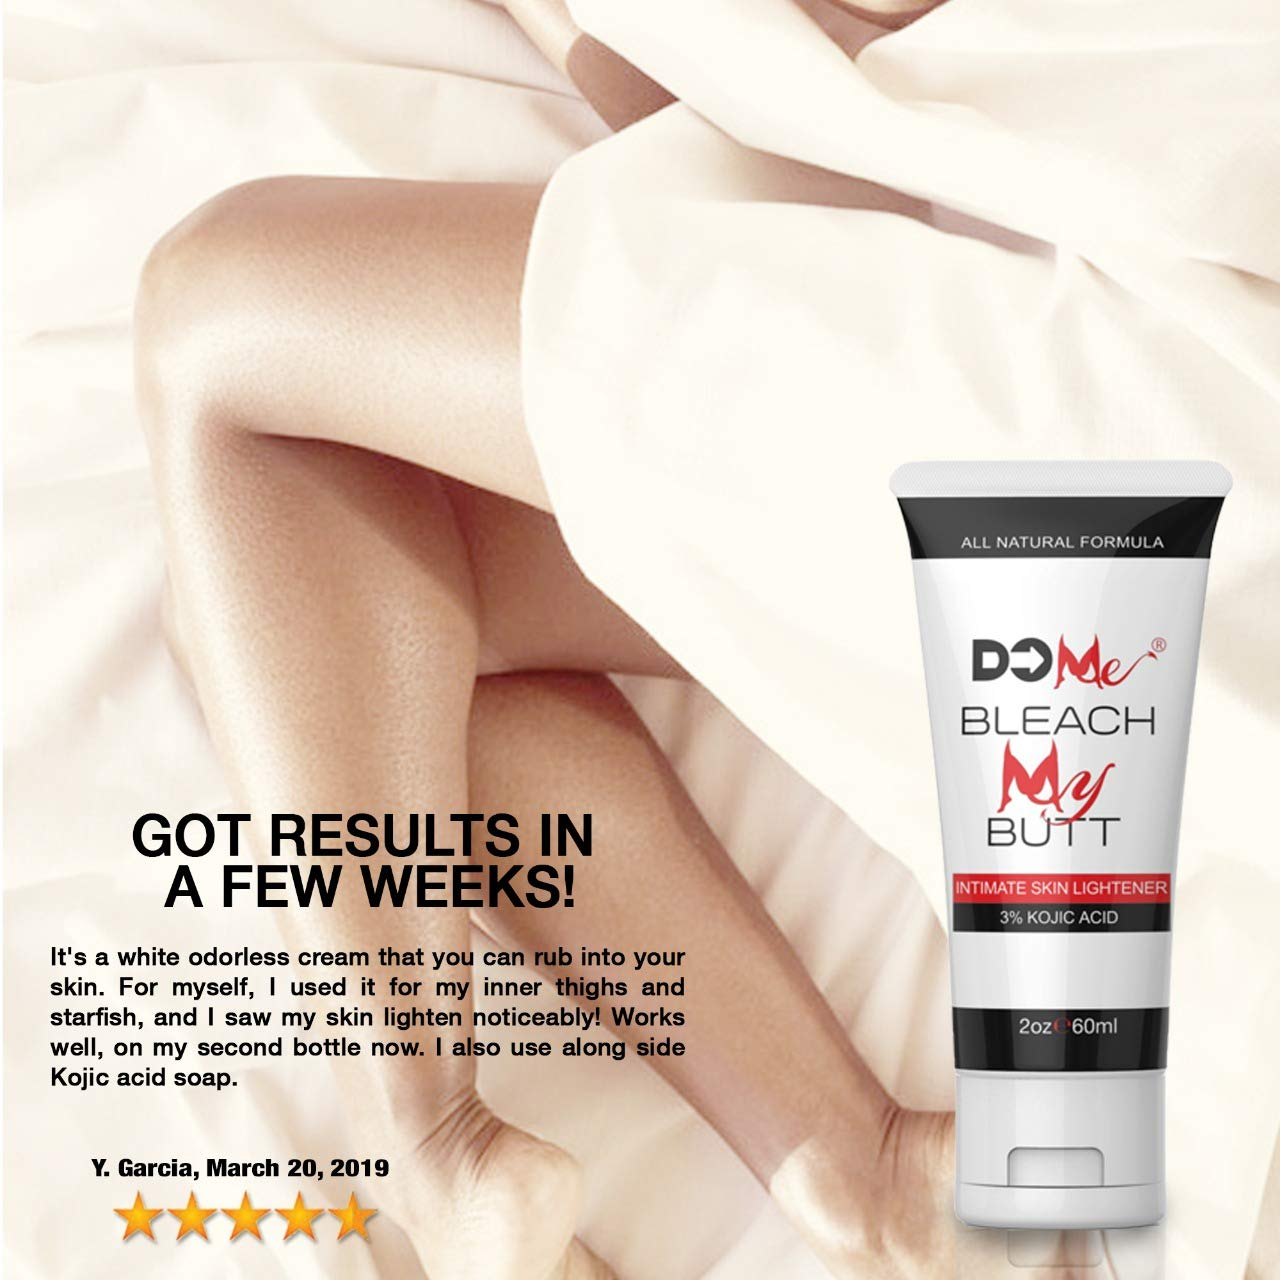 Premium Intimate Whitening Cream - Bleach My Butt - All Natural Formula to Pink Your Wink (2oz) (Bleach My Butt) by Do Me (Image #2)